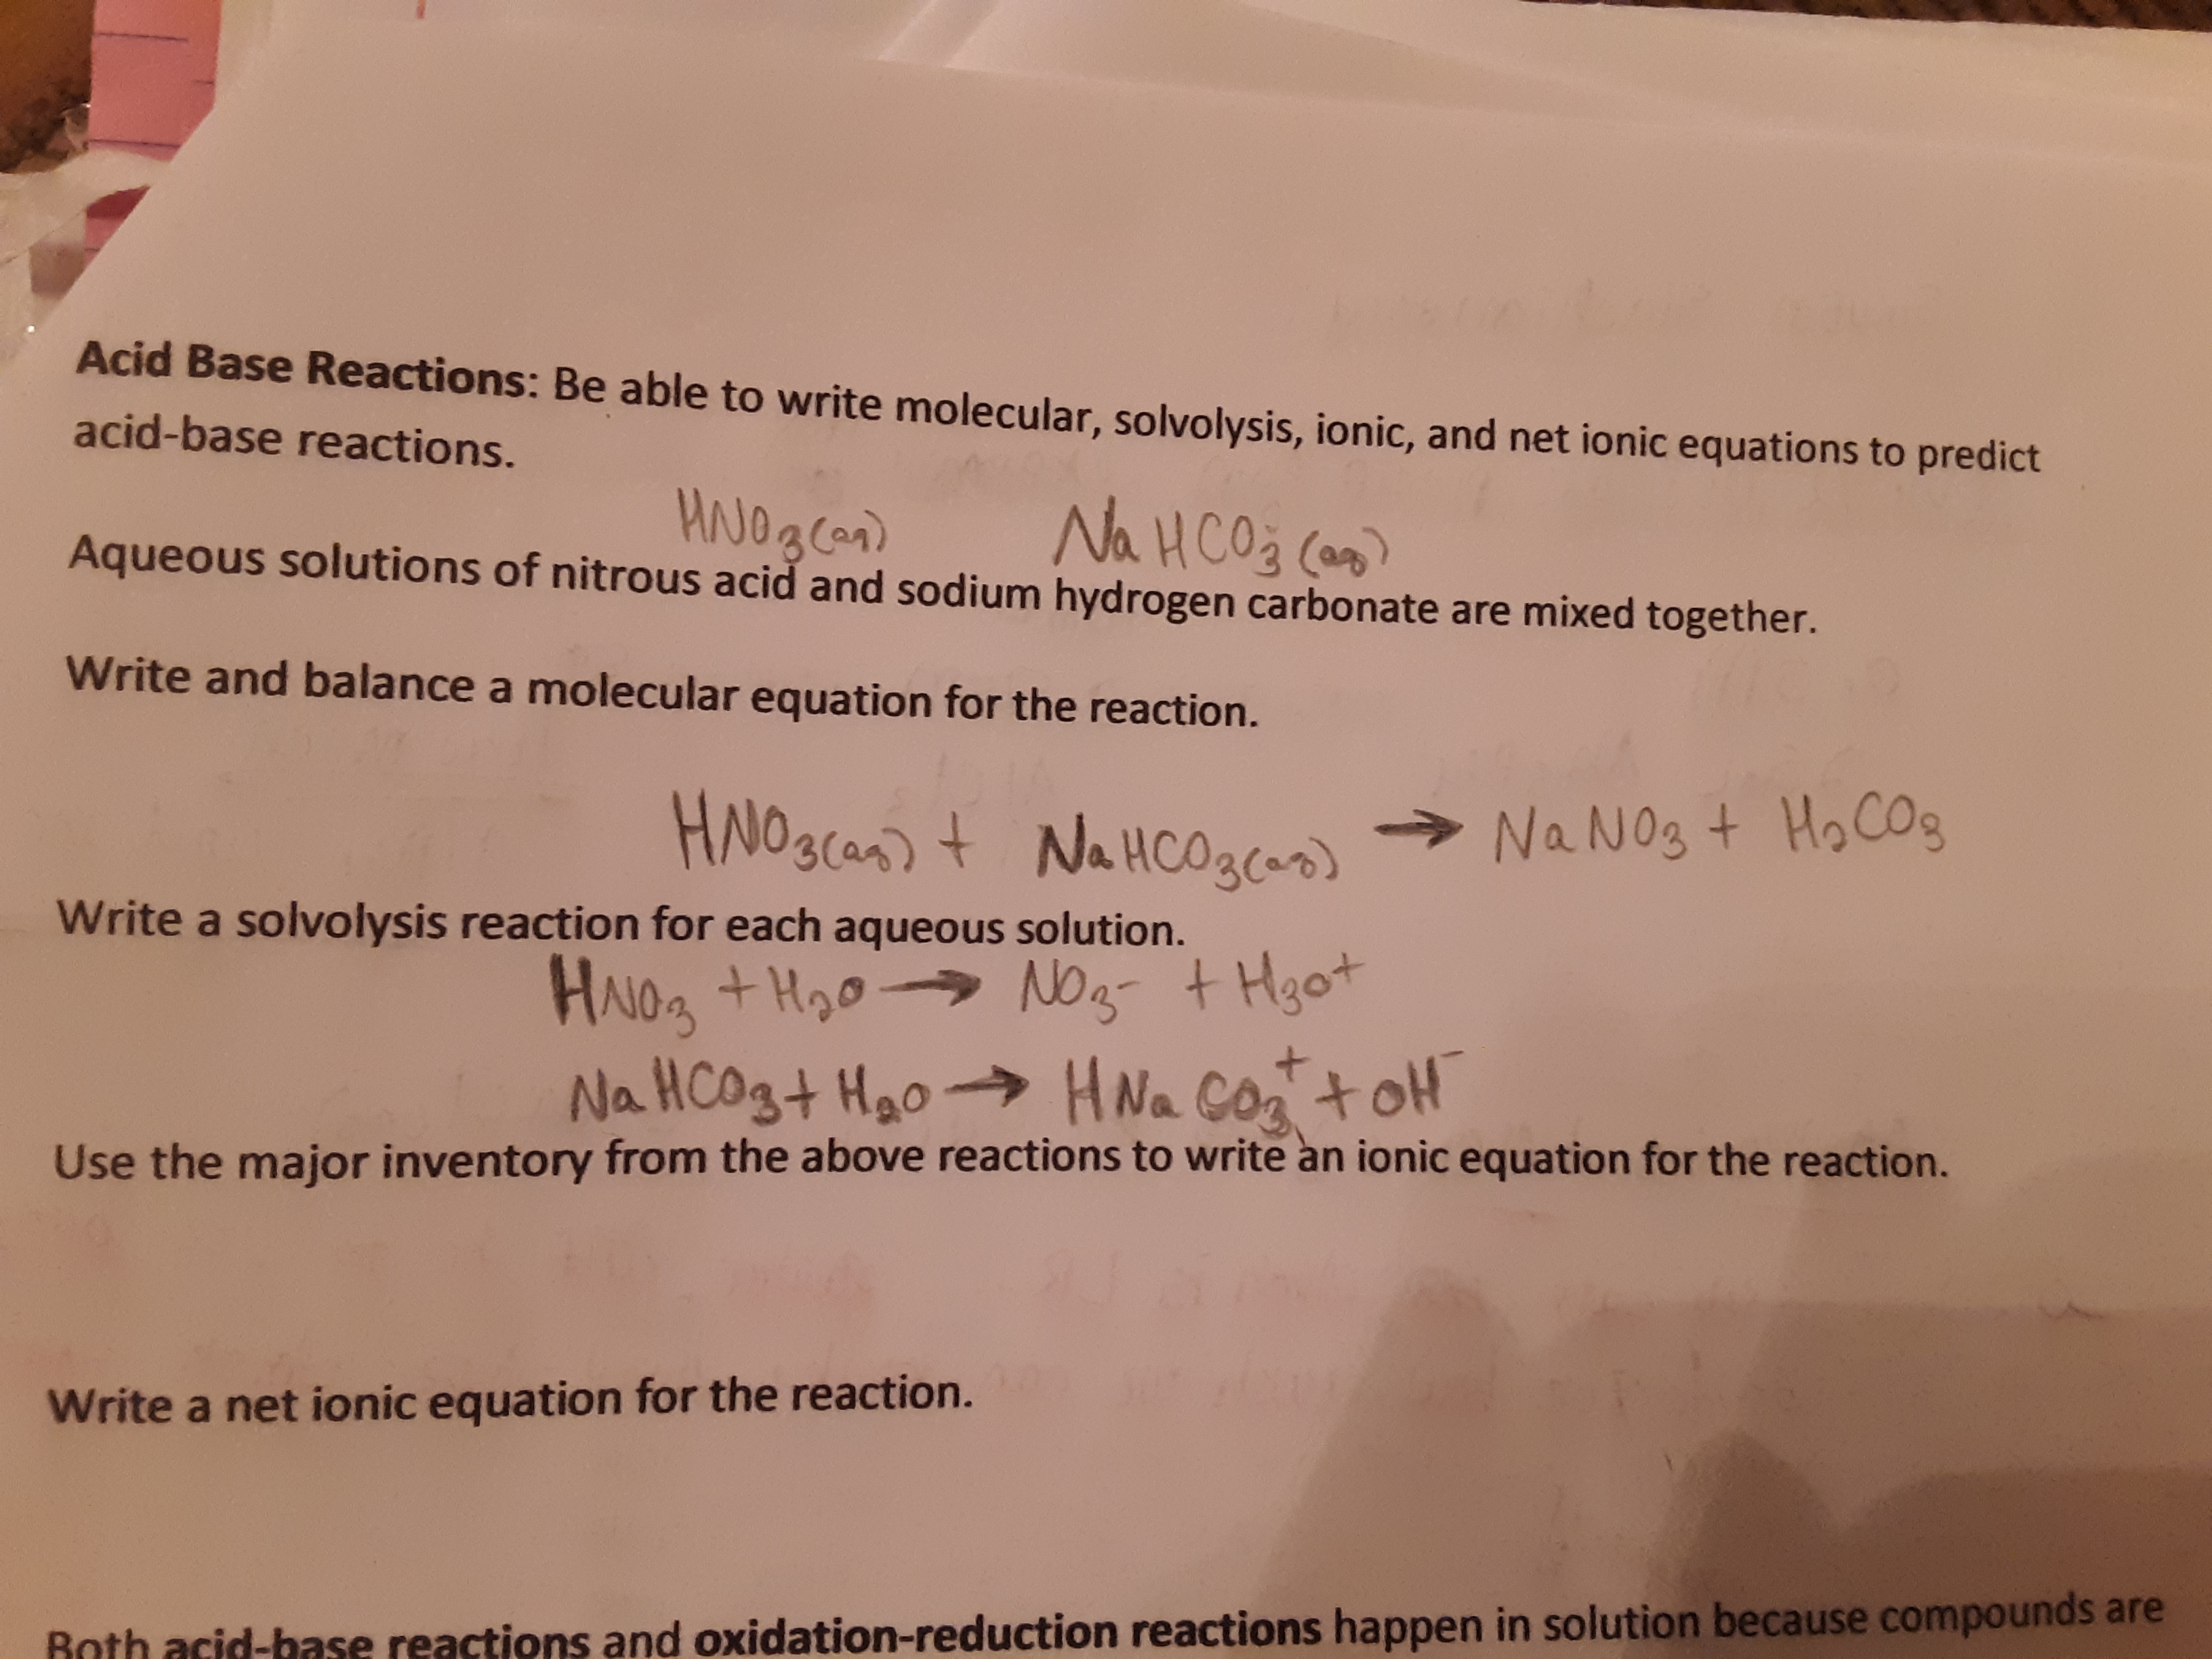 Acid Base Reactions: Be able to write molecular, solvolysis, ionic, and net ionic equations to predict acid-base reactions. Na HCO3 Can Aqueous solutions of nitrous acid and sodium hydrogen carbonate are mixed together. Write and ba lance a molecu lar equation for the reaction. HNO3(as) t NaHCO3) Na No3 t HoCOg Write a solvolysis reaction for each aqueous solution. HAIOa +Hoo No Na HCOgt Hao- tHgot HNa CoatoH Use the major inventory from the above reactions to write an ionic equation for the reaction. Write a net ionic equation for the reaction. Rnth acid-base reactions and oxidation-reduction reactions happen in solution because compounds are